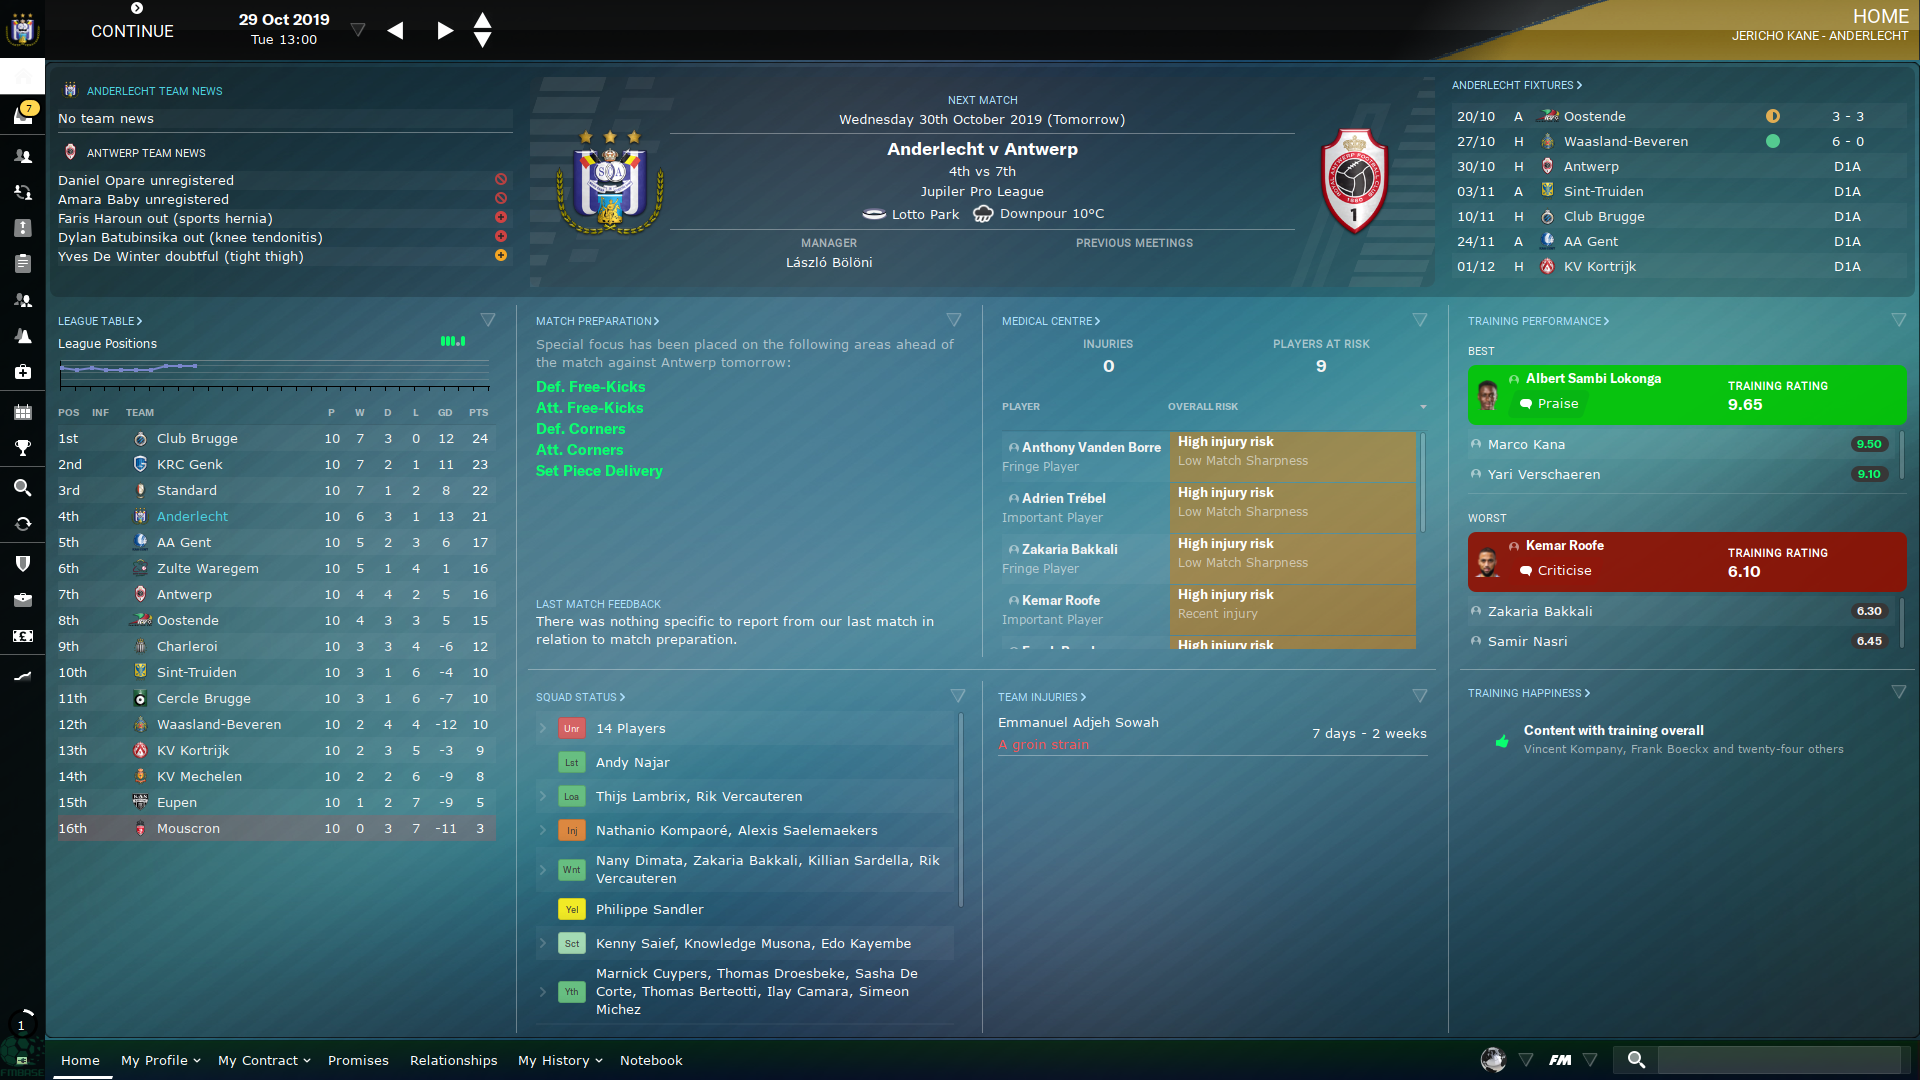 Football Manager 2020 24_11_2019 00_23_02.png